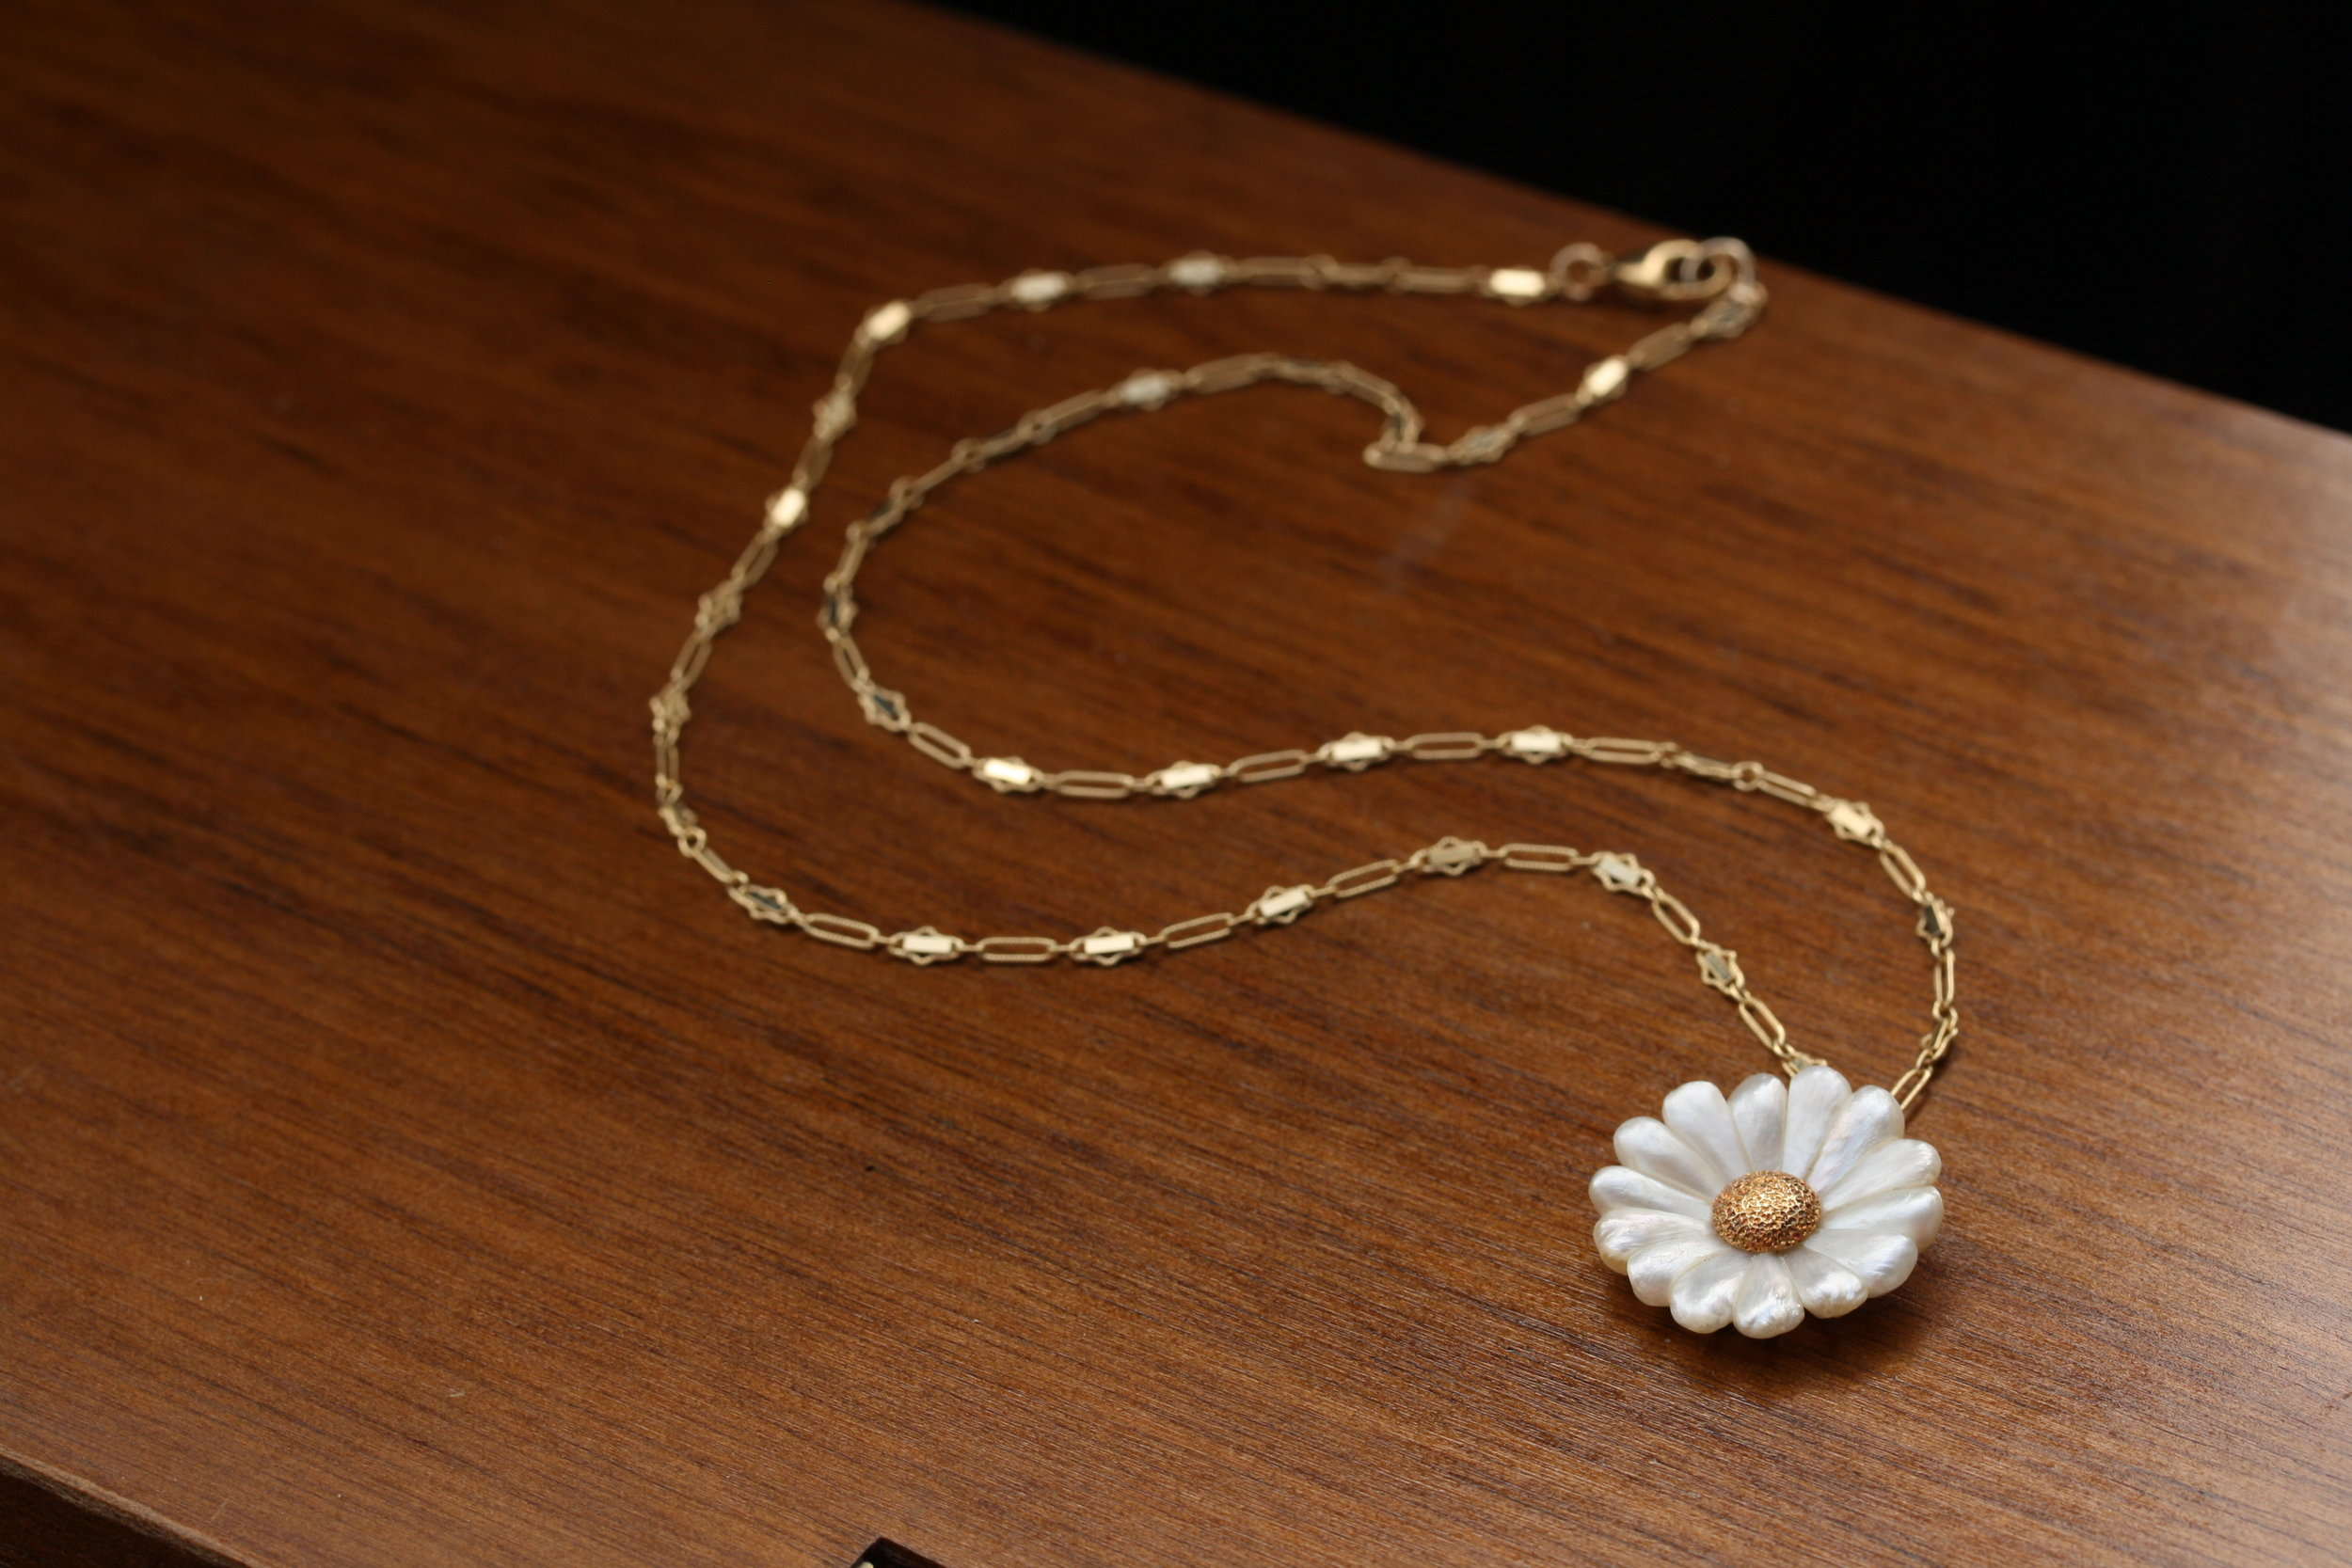 VCON Victorian Daisy Pendant on Vintage Inspired Chain_15 copy.JPG